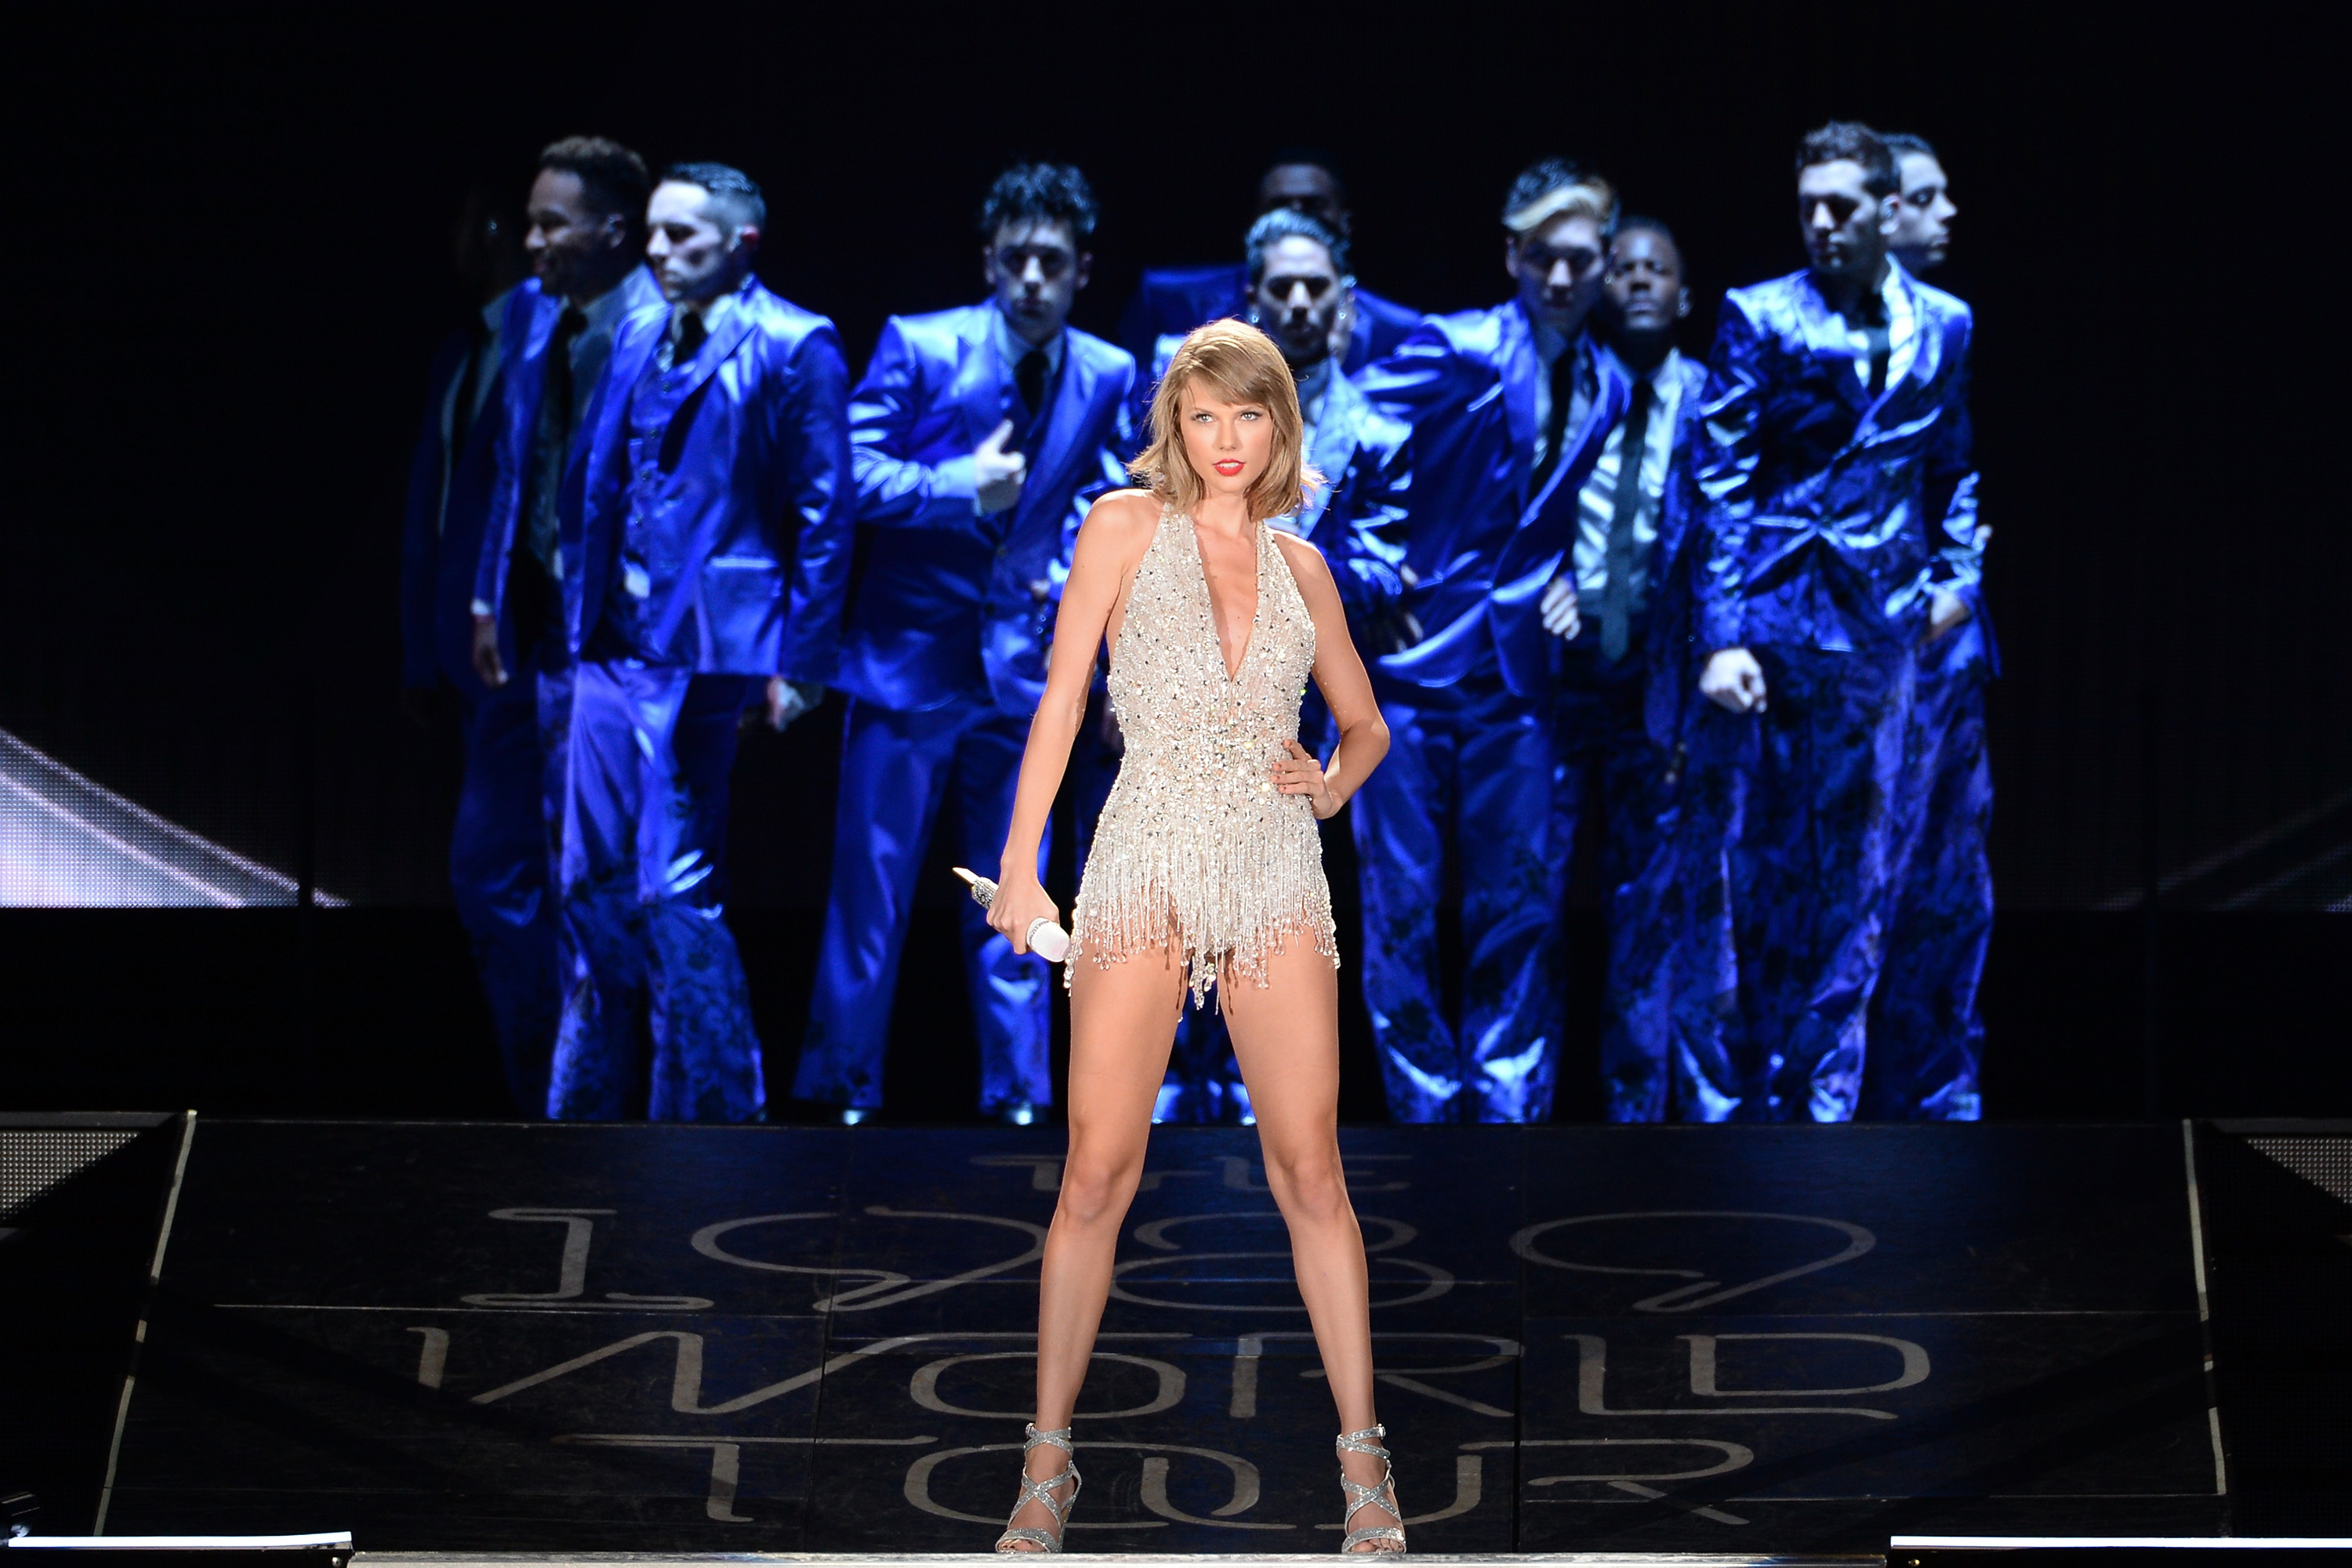 Taylor Swift S 1989 Tour In China Conjures Images Of Tiananmen Square Fortune